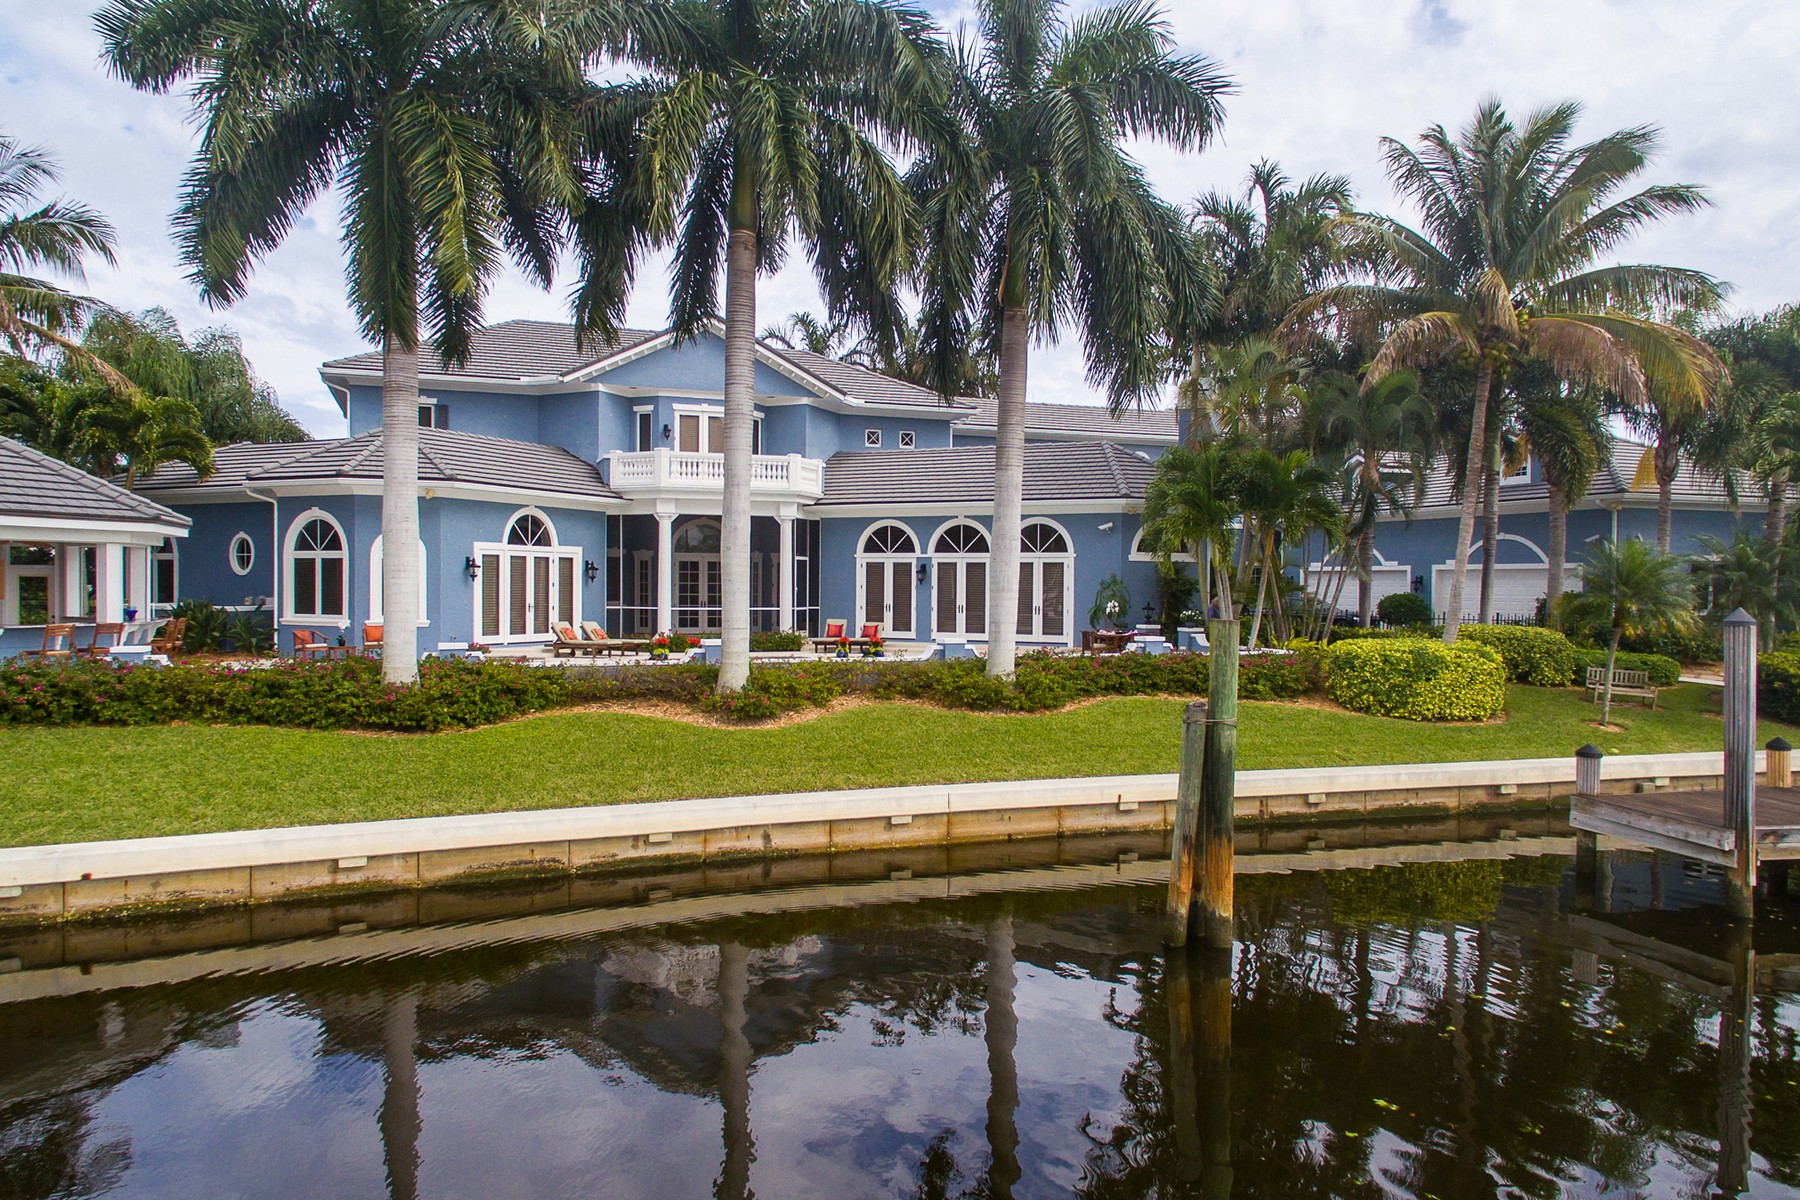 Moradia para Venda às Yachtsman Dream Home in the Moorings 101 Springline Drive Vero Beach, Florida, 32963 Estados Unidos